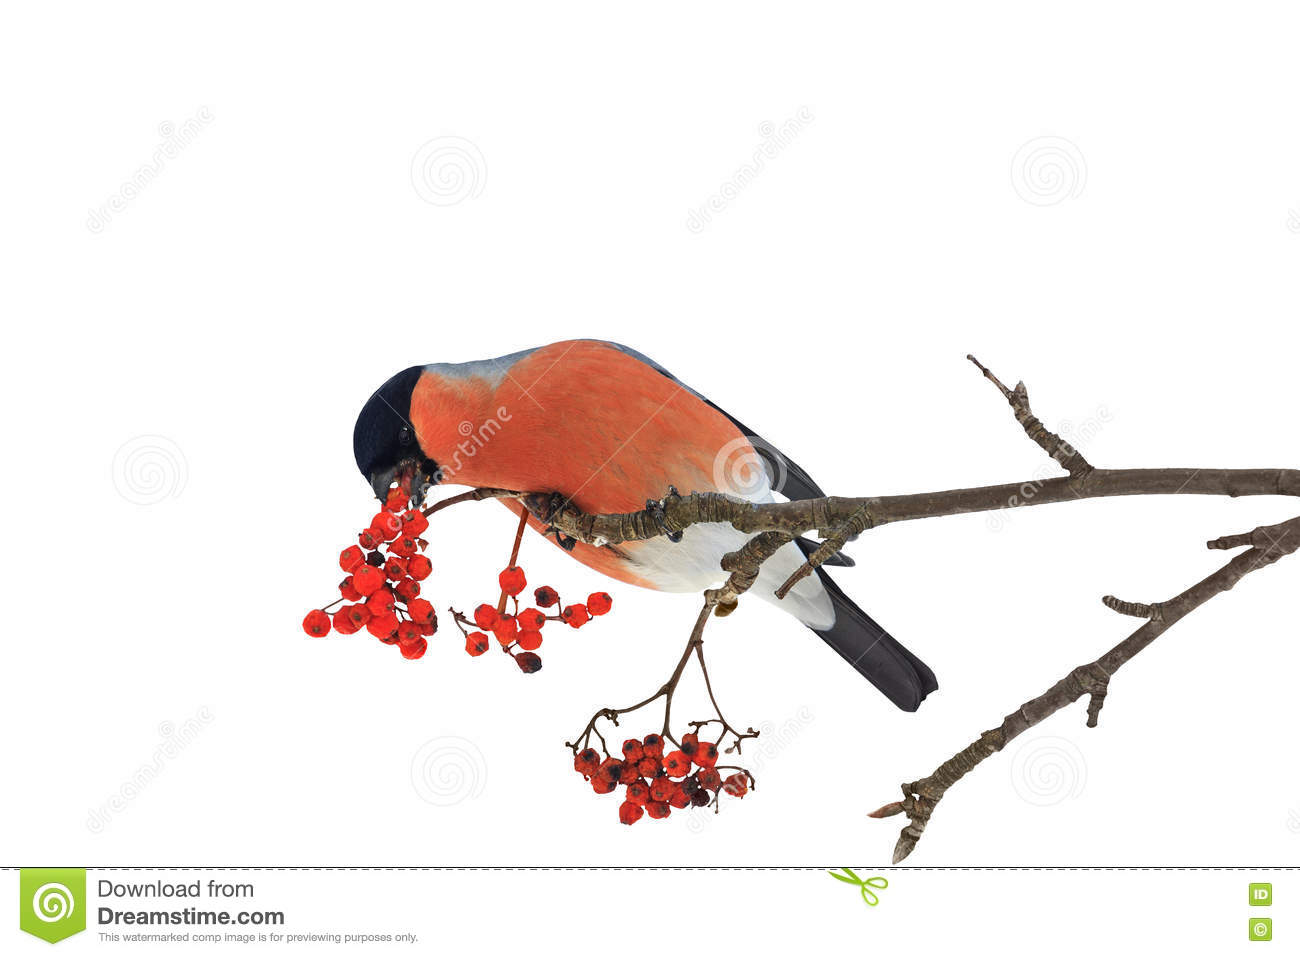 Cute colorful eurasian bullfinch eating red berries isolated on white